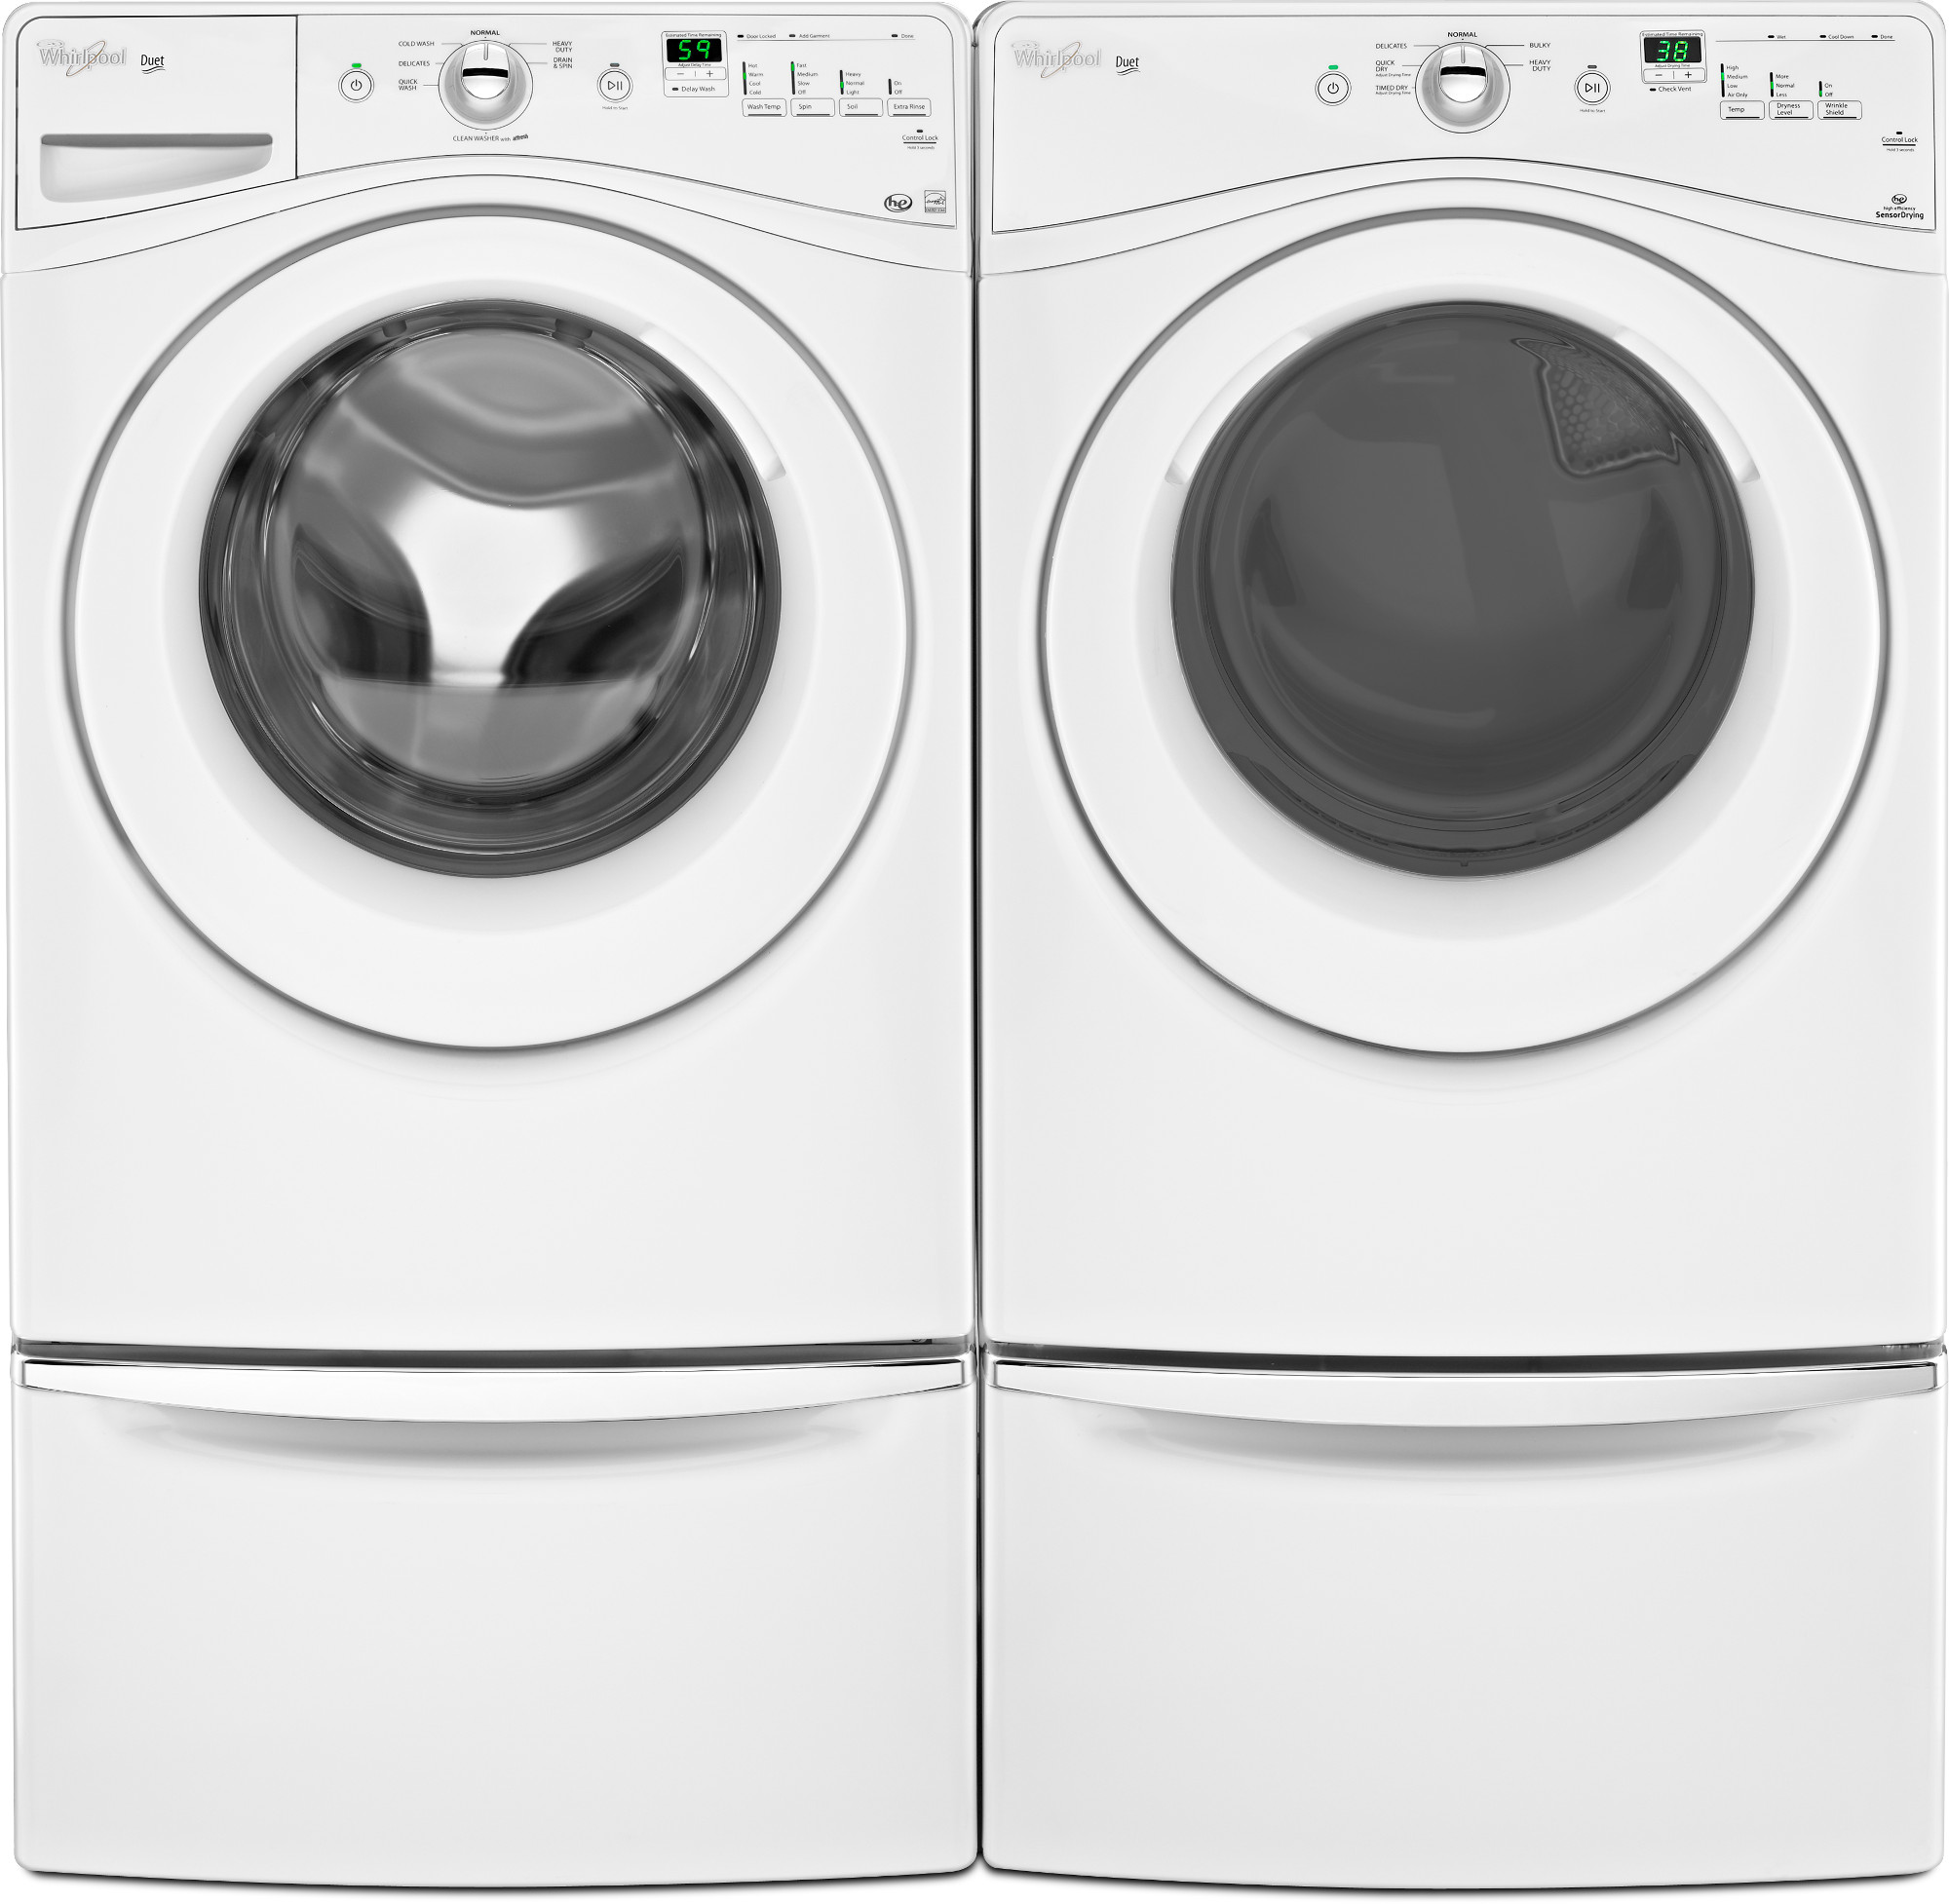 Whirlpool 7.3 cu. ft. Duet® Front Load Dryer - White WED71HEBW